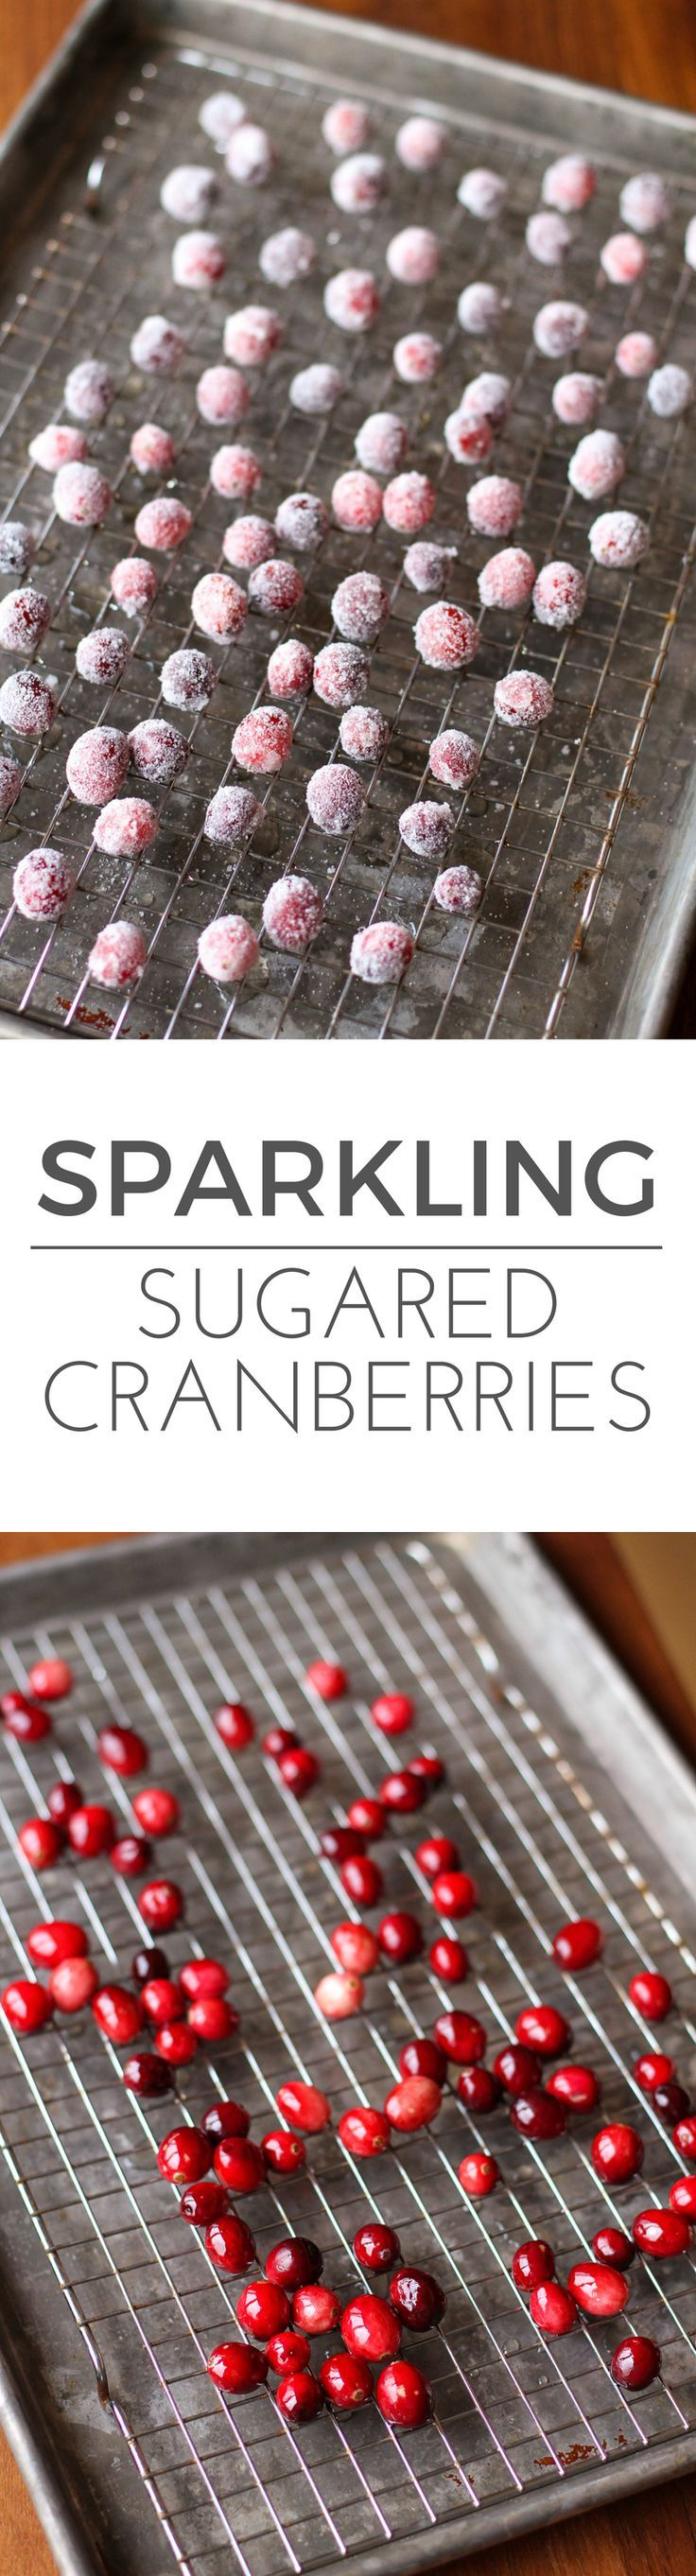 Sparkling Sugared Cranberries -- you'll love these little sweet and sour fresh cranberries dipped in simple syrup and rolled in sugar. They're an elegant way to dress up baked goods for the holiday season (and tasty to eat as is)! | via @unsophisticook on unsophisticook.com